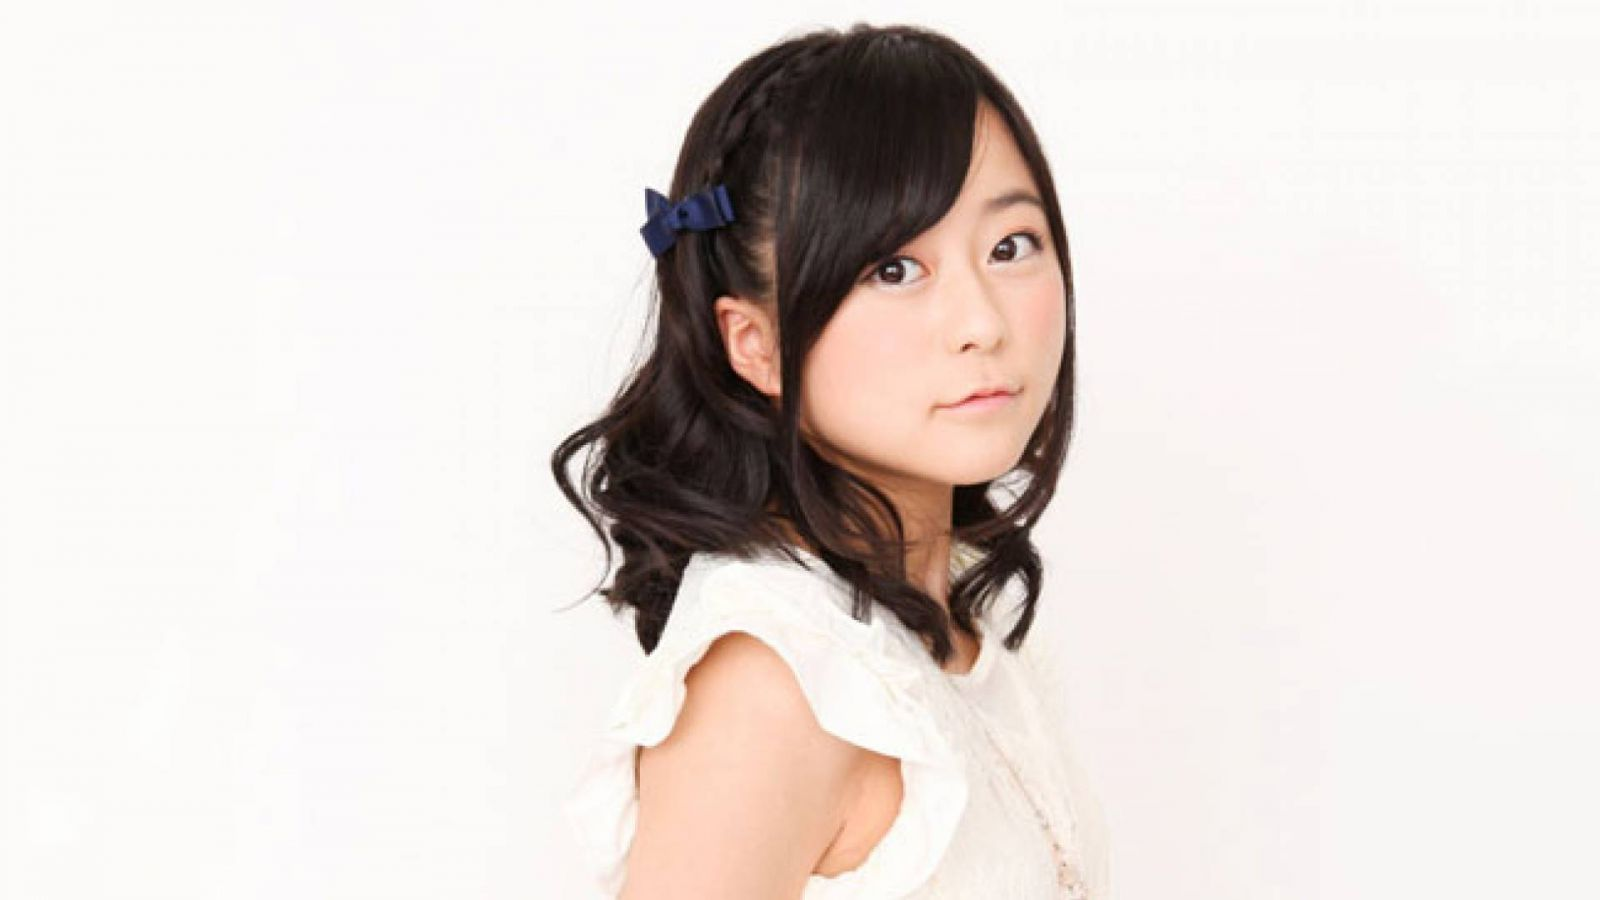 Inori Minase to Release Debut Single © Sony Music Artists Inc. All rights reserved.